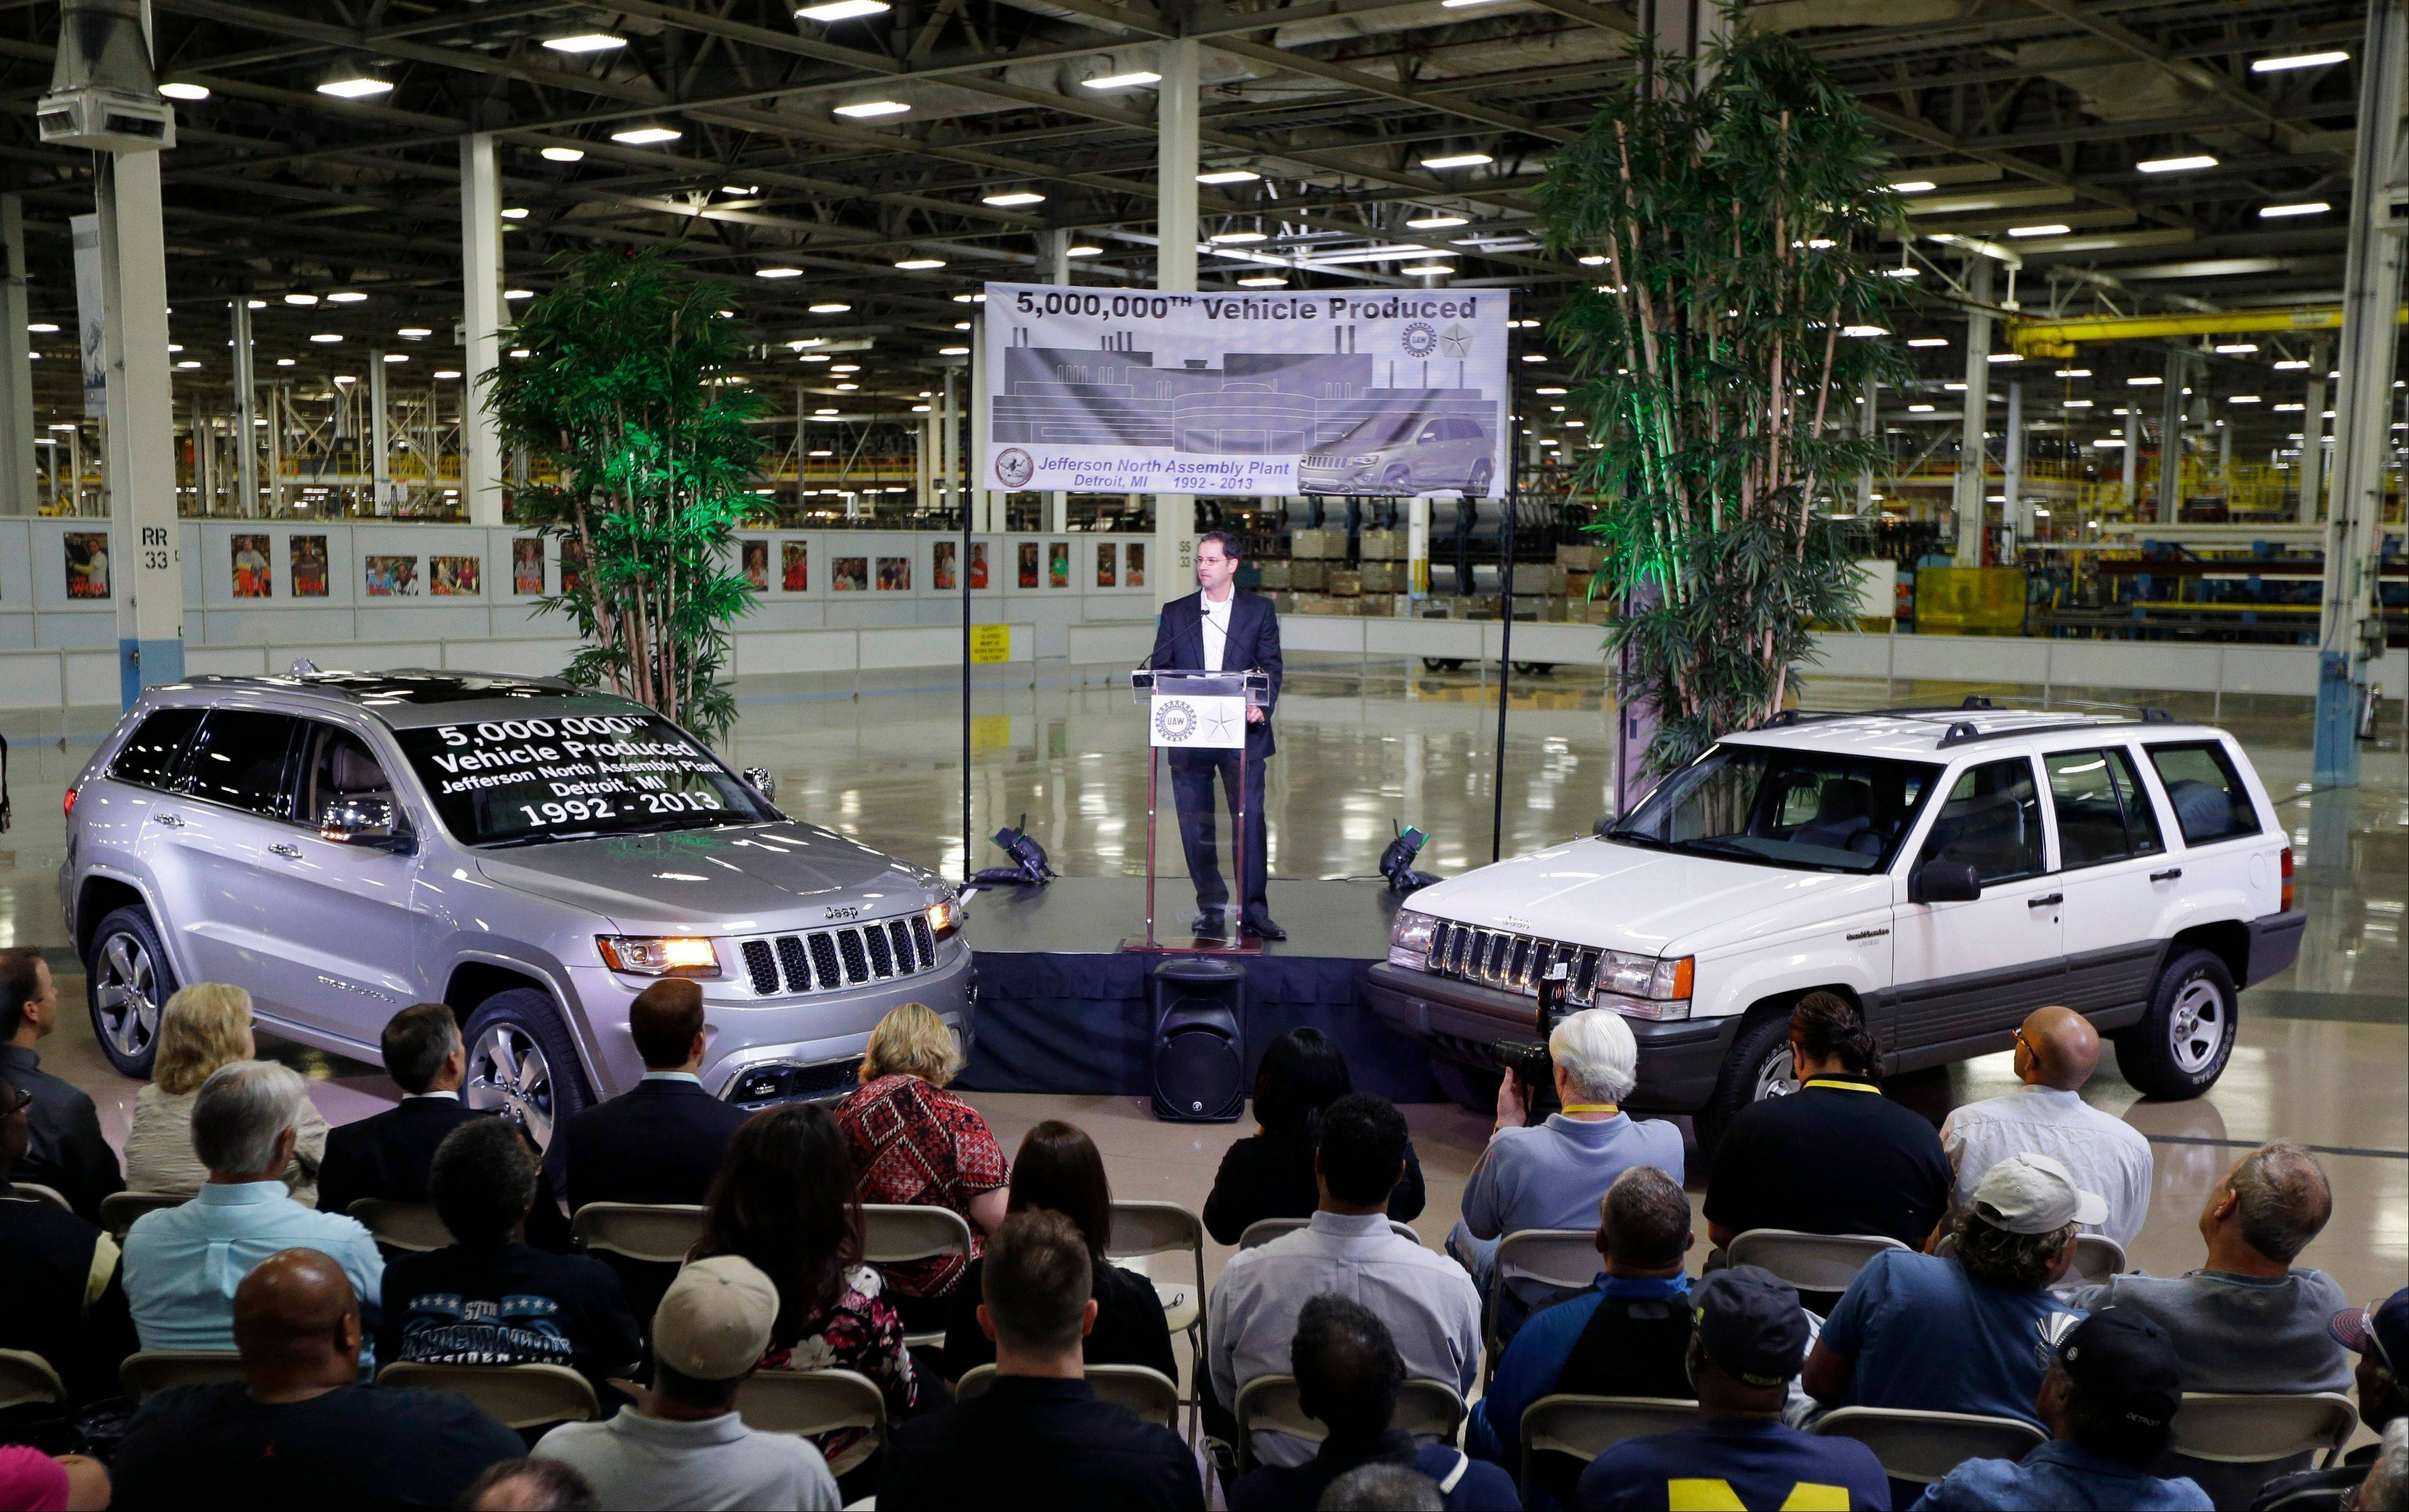 Scott Garberding, senior vice president of manufacturing for Chrysler Group LLC stands between a 1992 Grand Cherokee, right, and the automaker�s 5,000,000th vehicle produced at the Jefferson North Assembly Plant, in Detroit. U.S. factories increased output in August by the most in eight months, helped by a robust month at auto plants. The gains are a hopeful sign that manufacturing could help boost economic growth in the second half of the year.